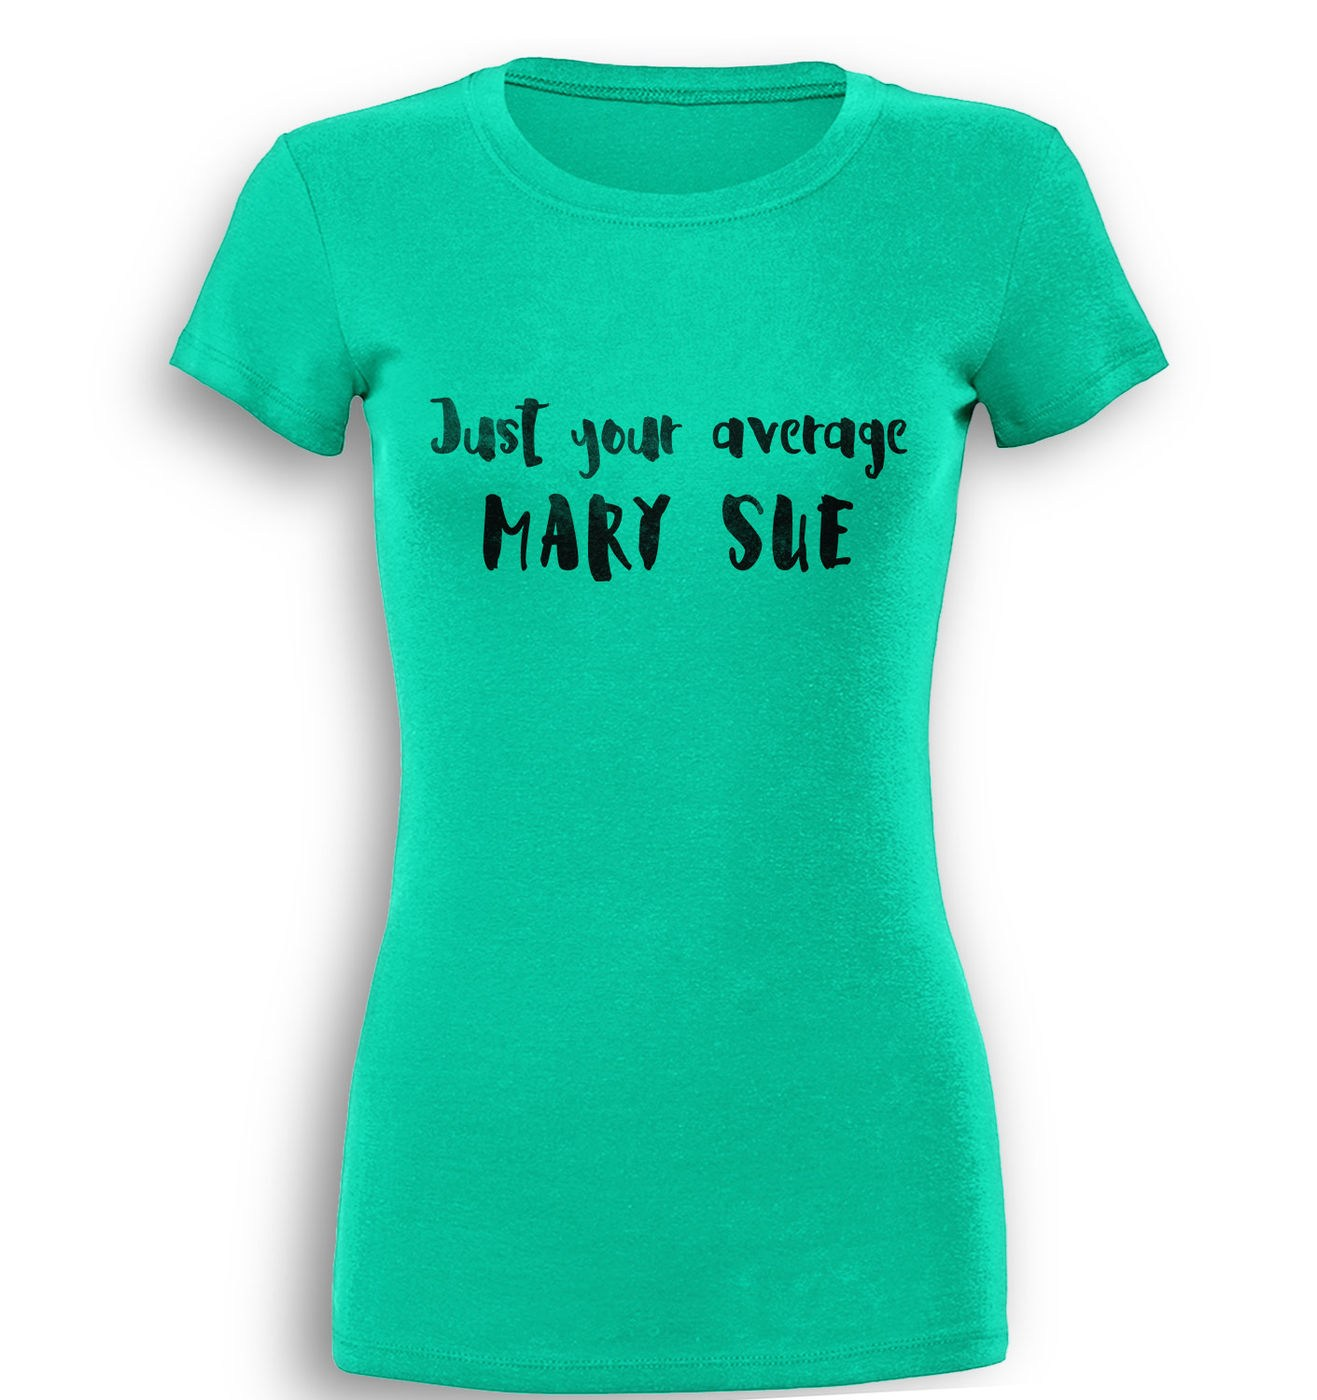 Mary Sue premium women's t-shirt by Something Geeky